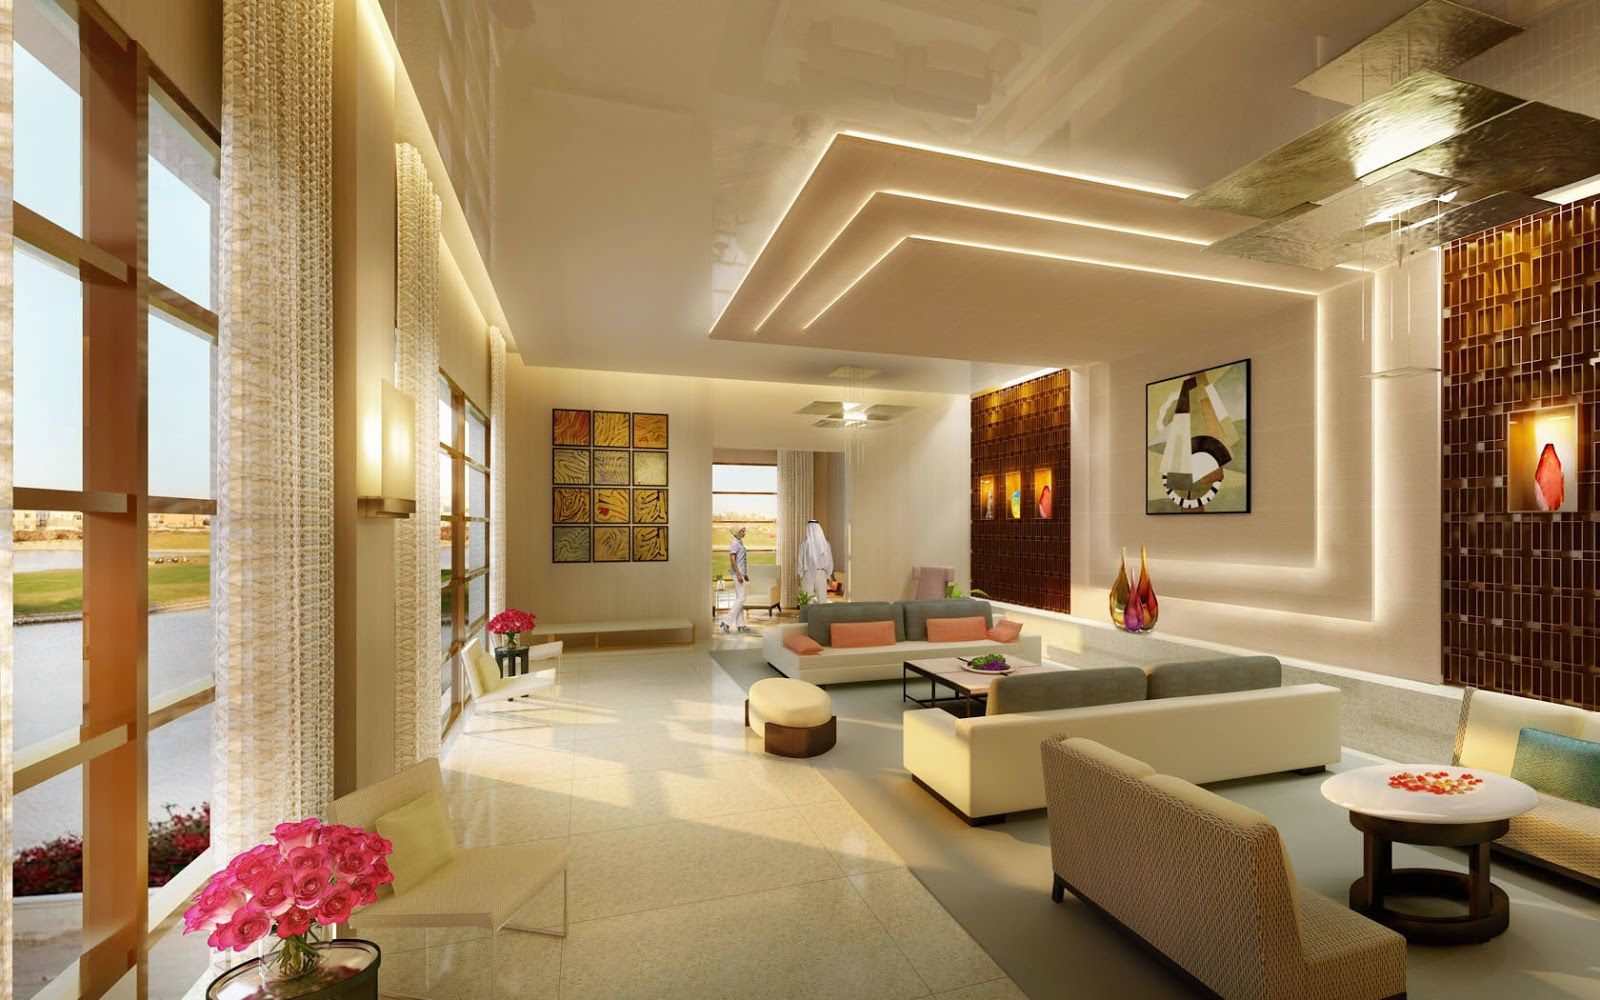 Top 3 Most Expensive Luxury Homes In The World False Ceiling Design Ceiling Design False Ceiling